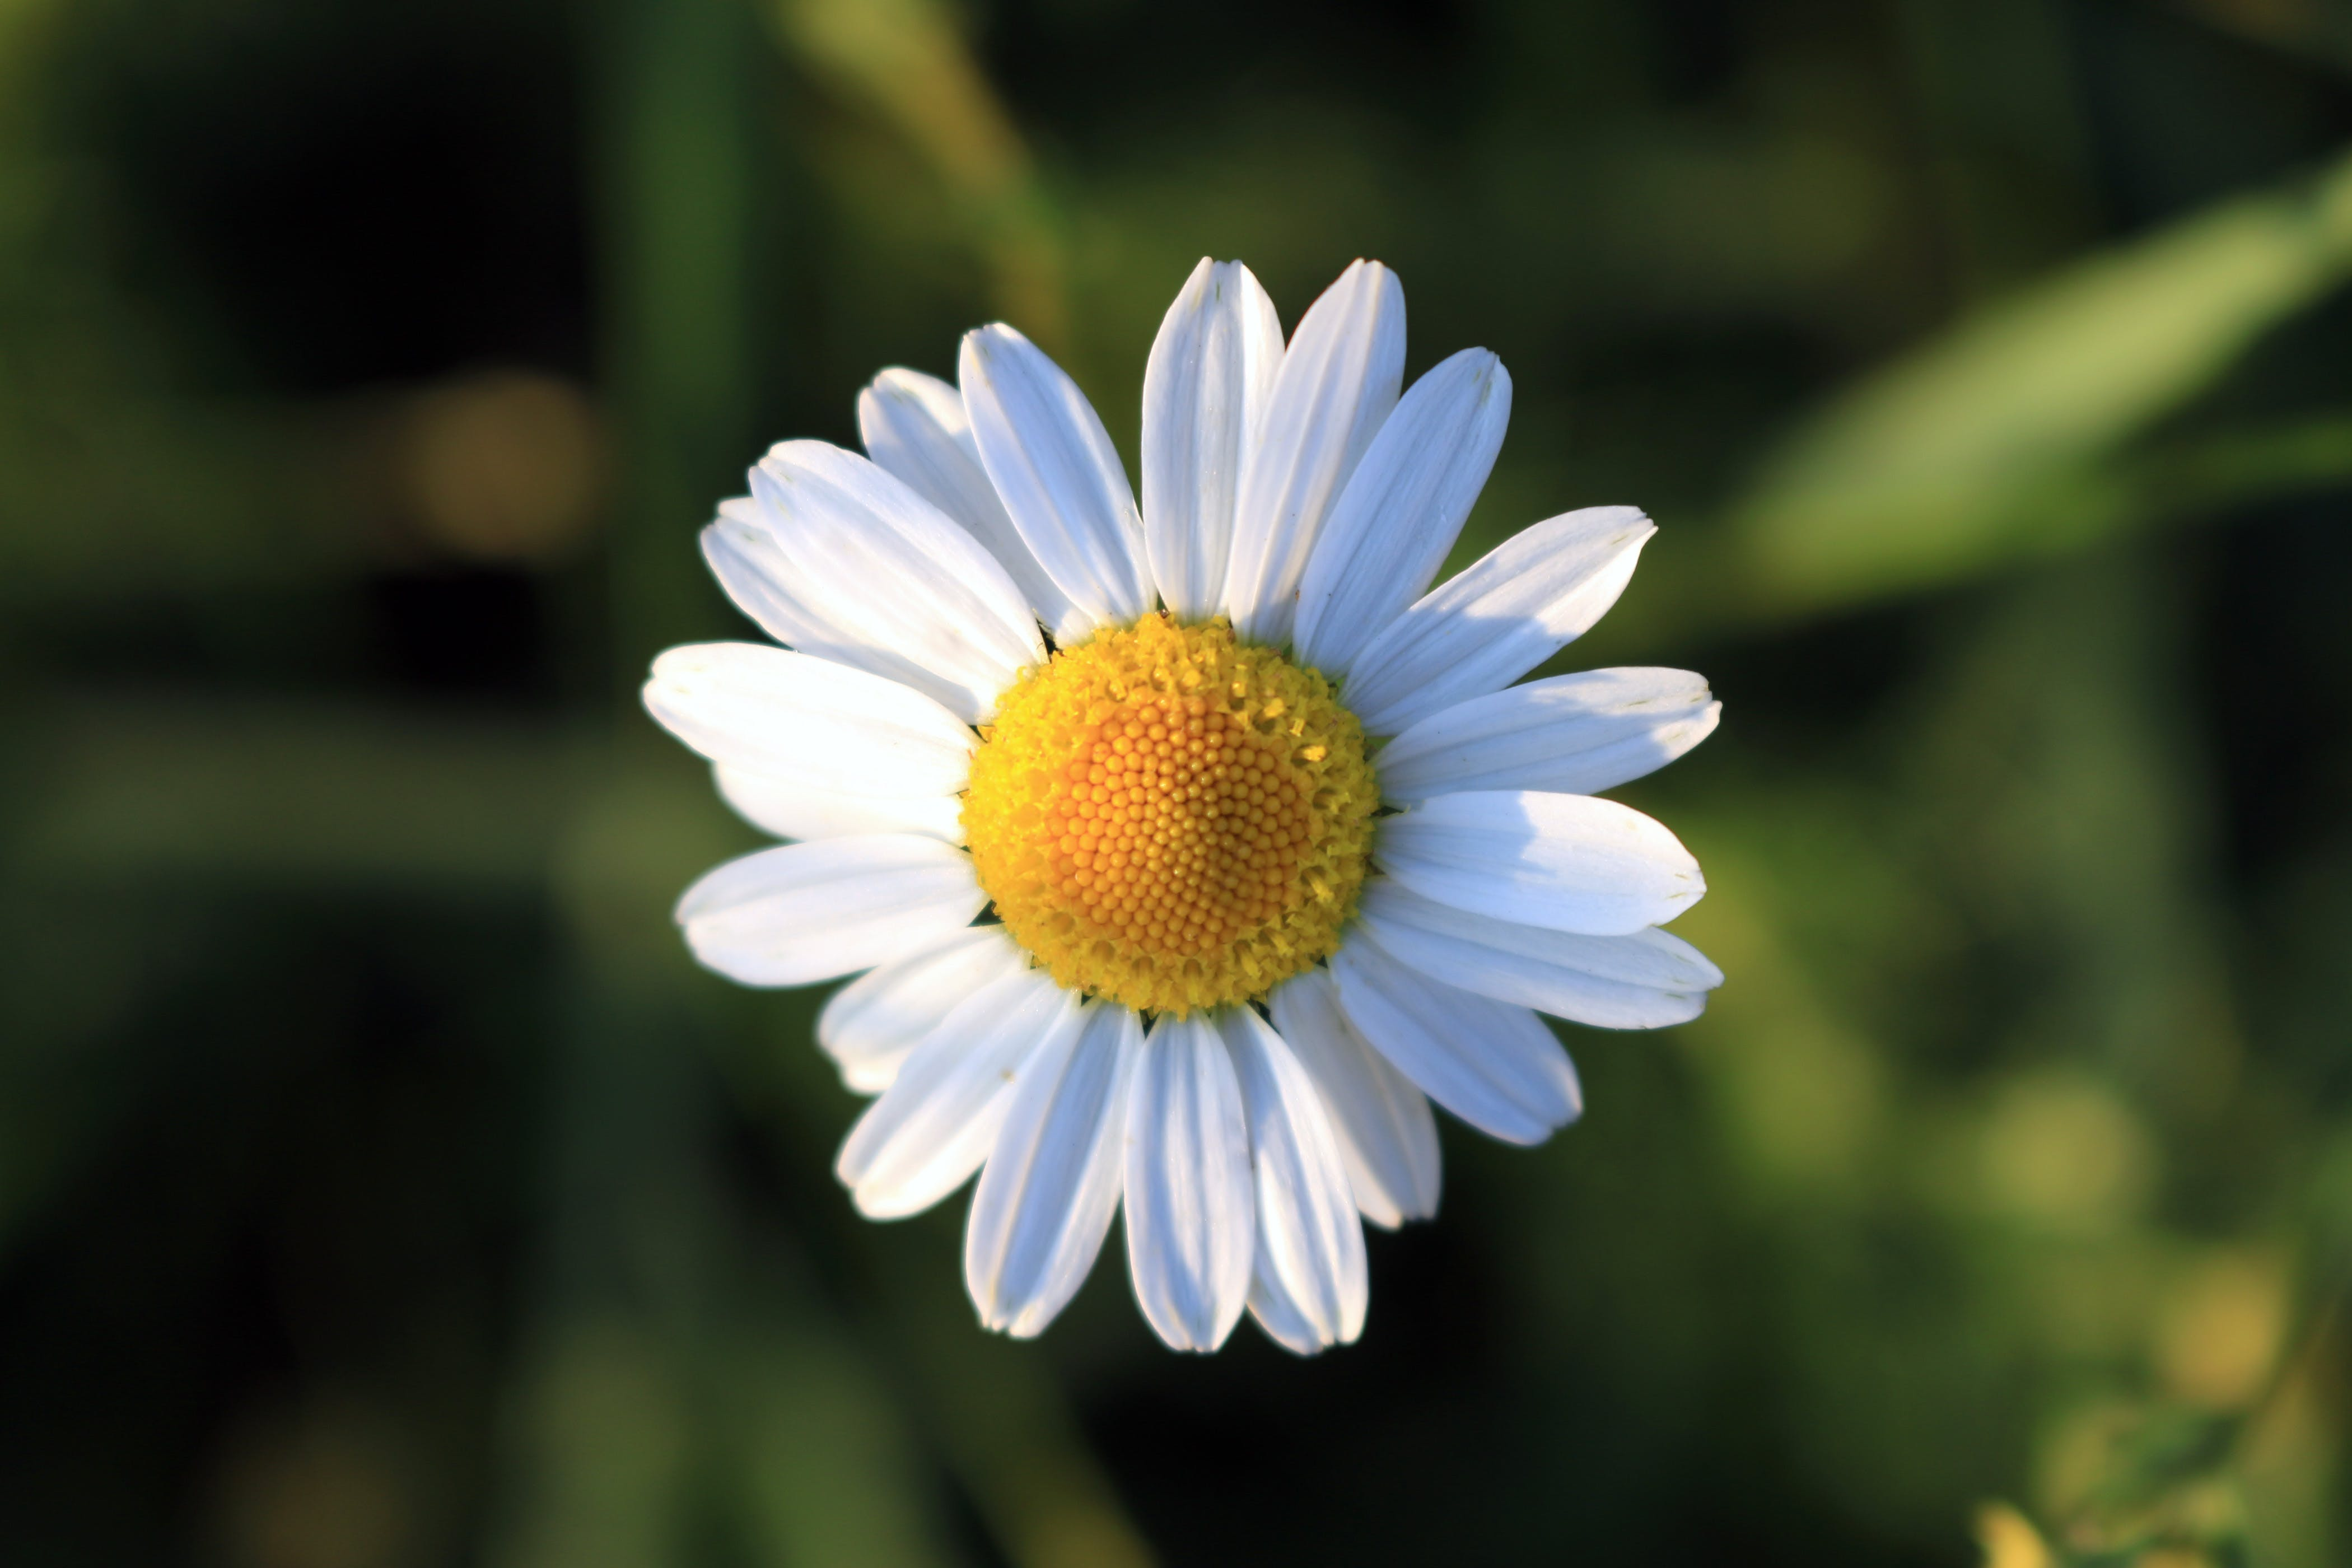 Selective Focus Photography of White Ox Eye Daisy Flower